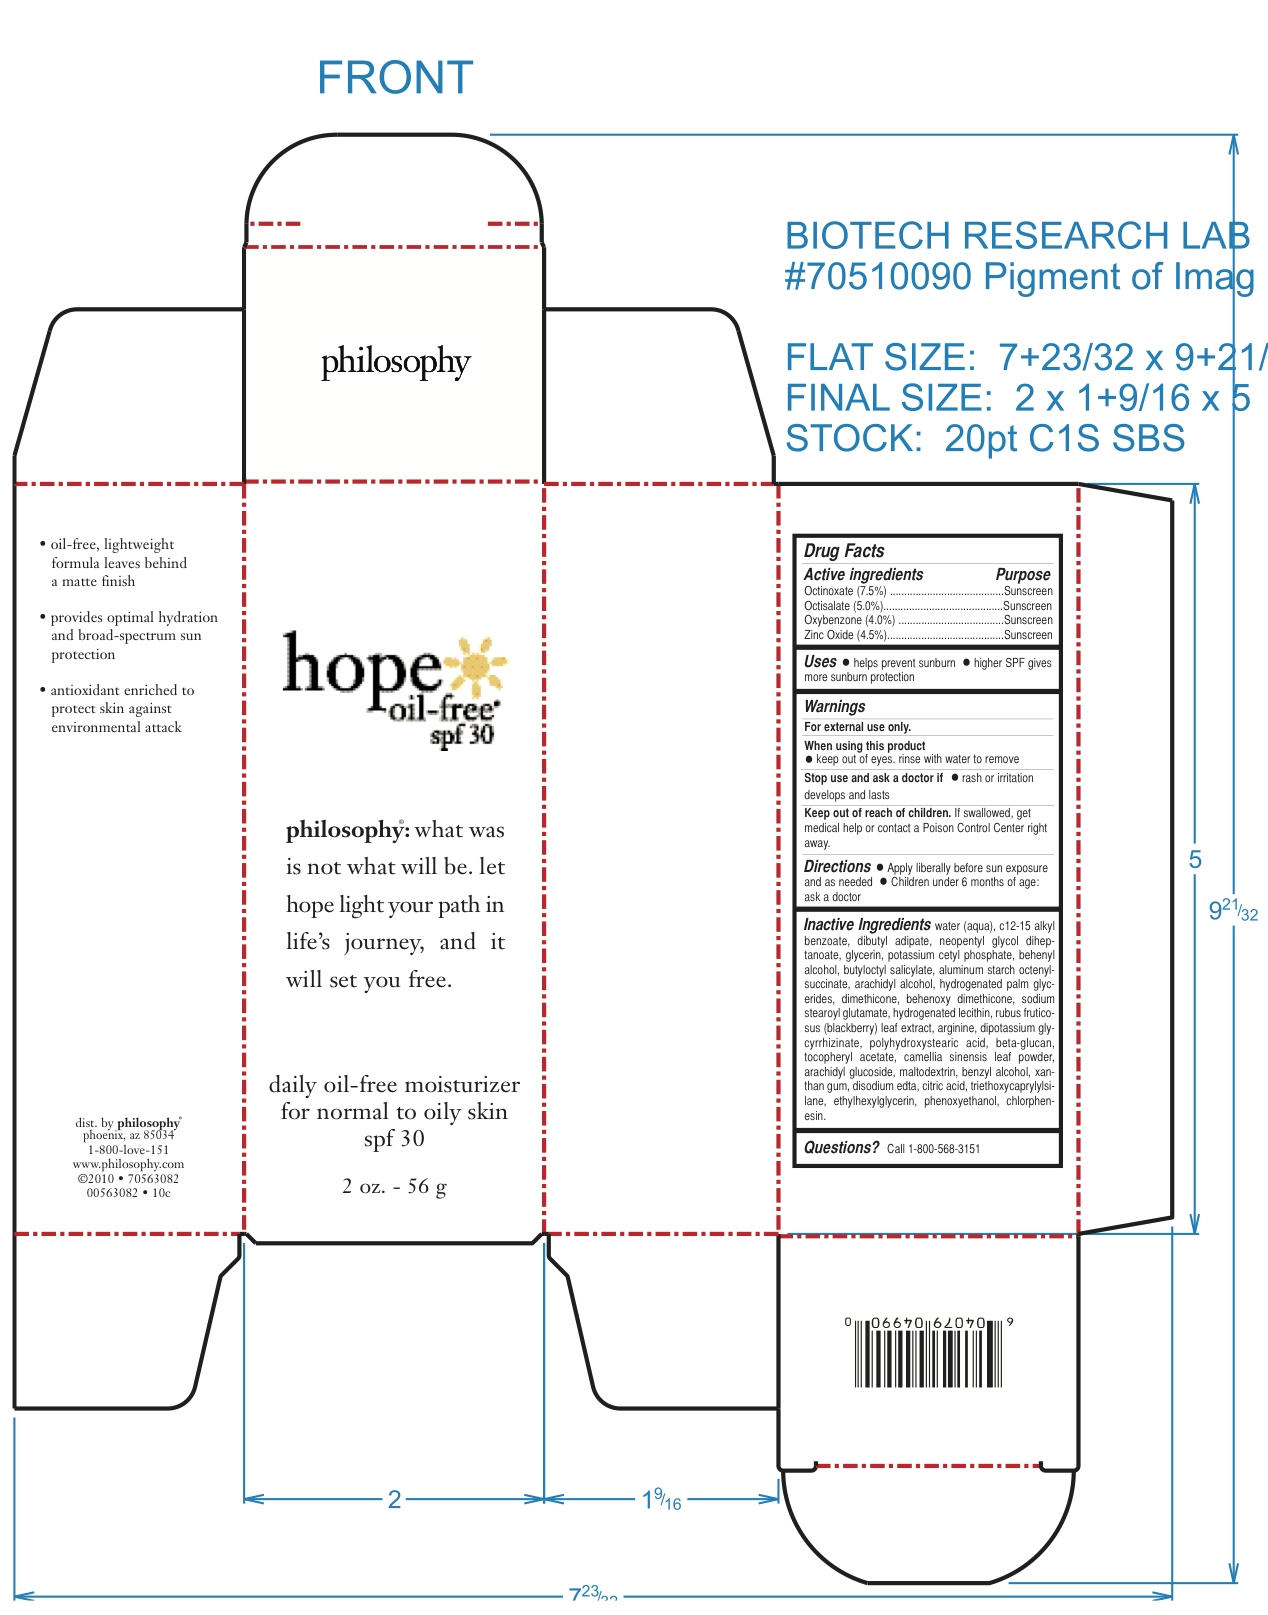 Hope Oil Free Moisturizer Spf 30 (Octinoxate And Octisalate And Oxybenzone And Zinc Oxide) Cream [Philosophy, Inc.]